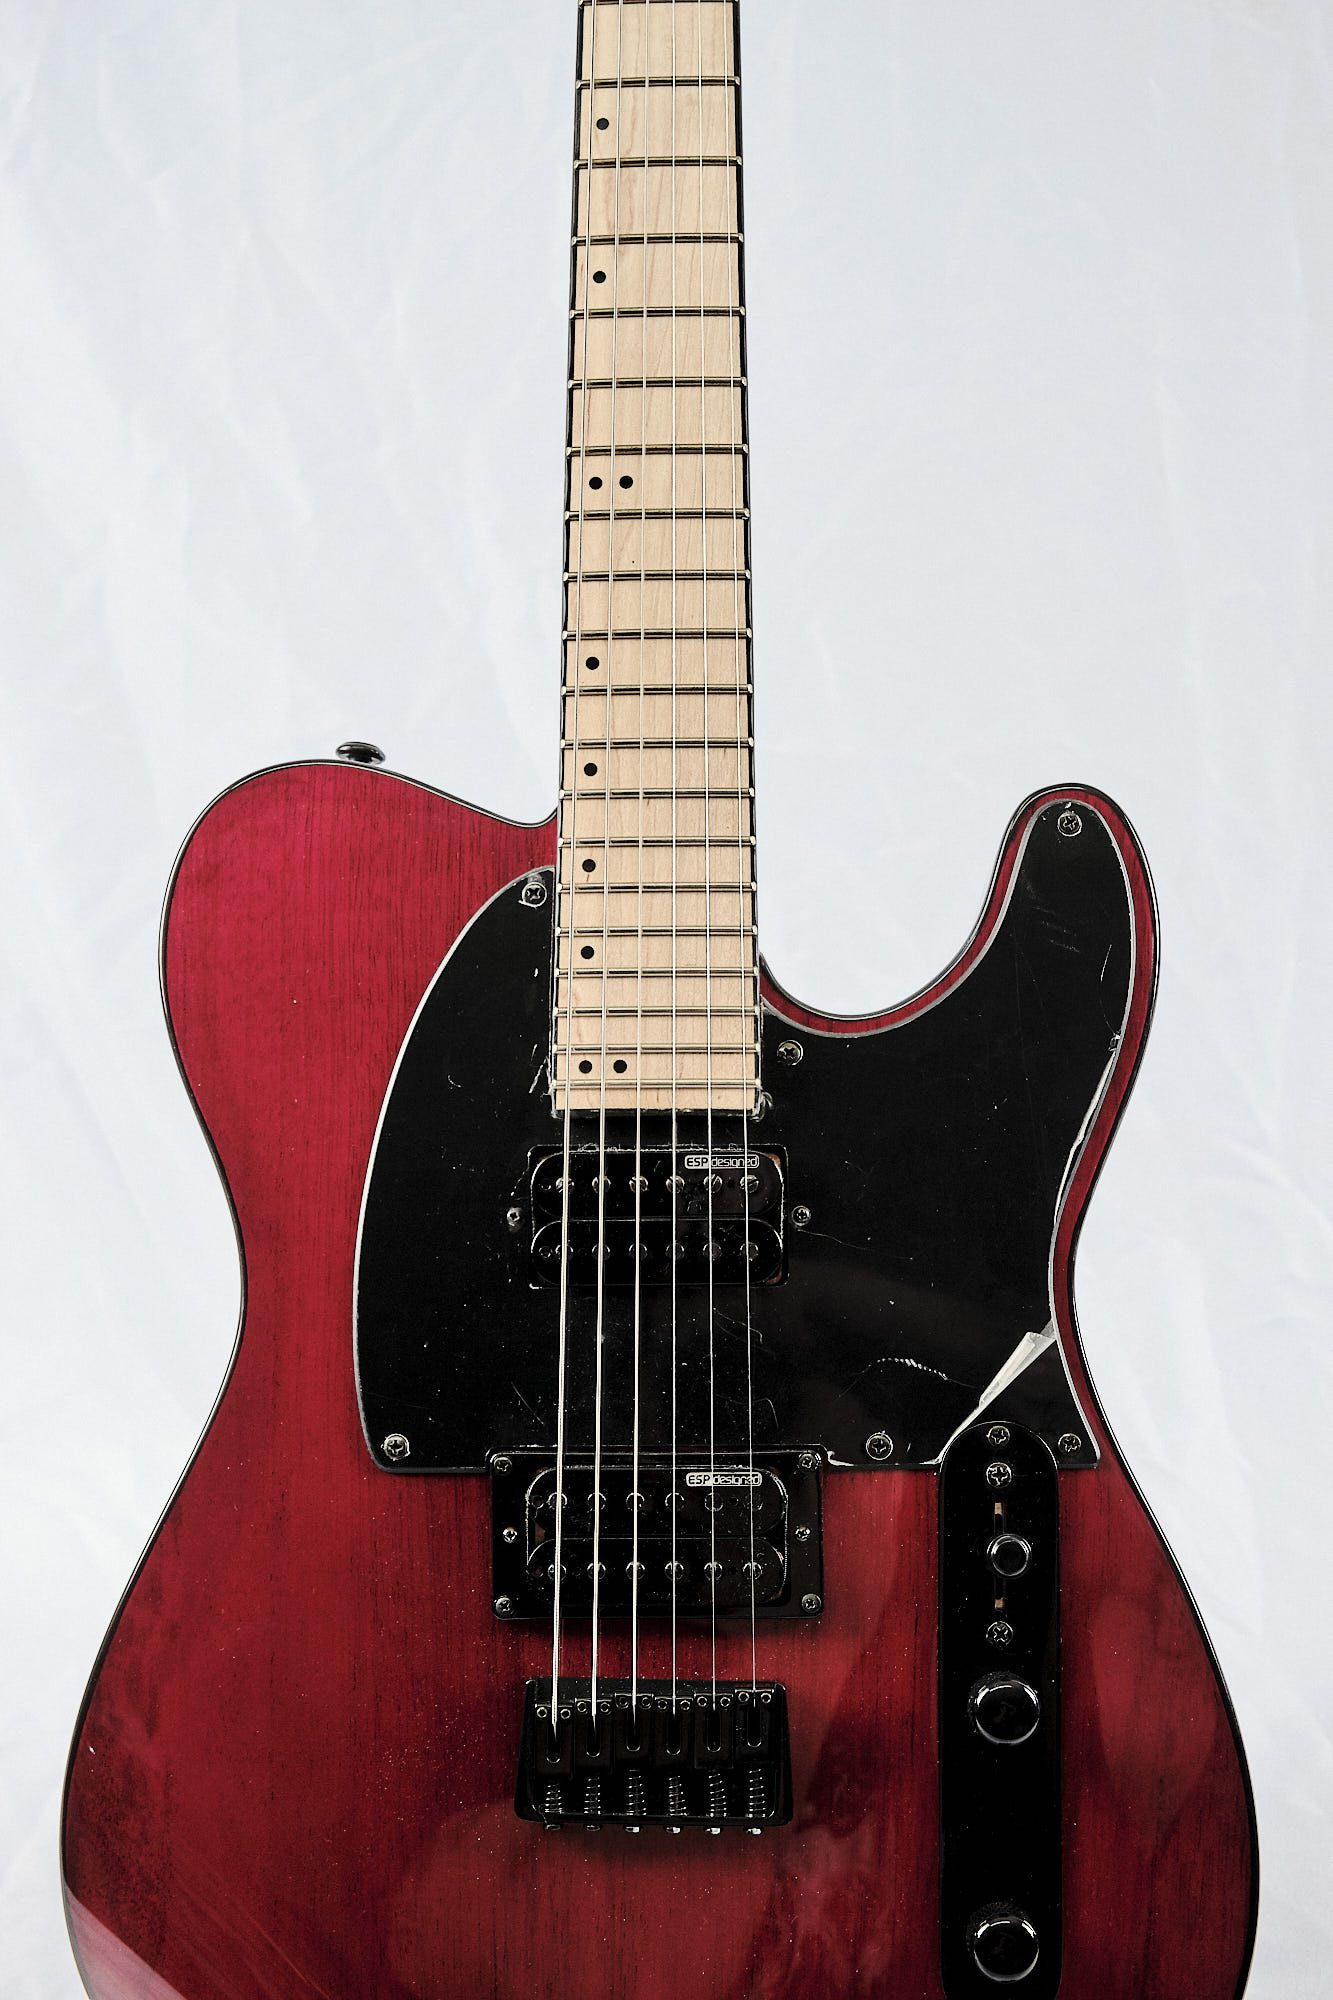 Guitarra Esp Ltd Te200m Telecaster Hh Mogno Maple Red Cherry